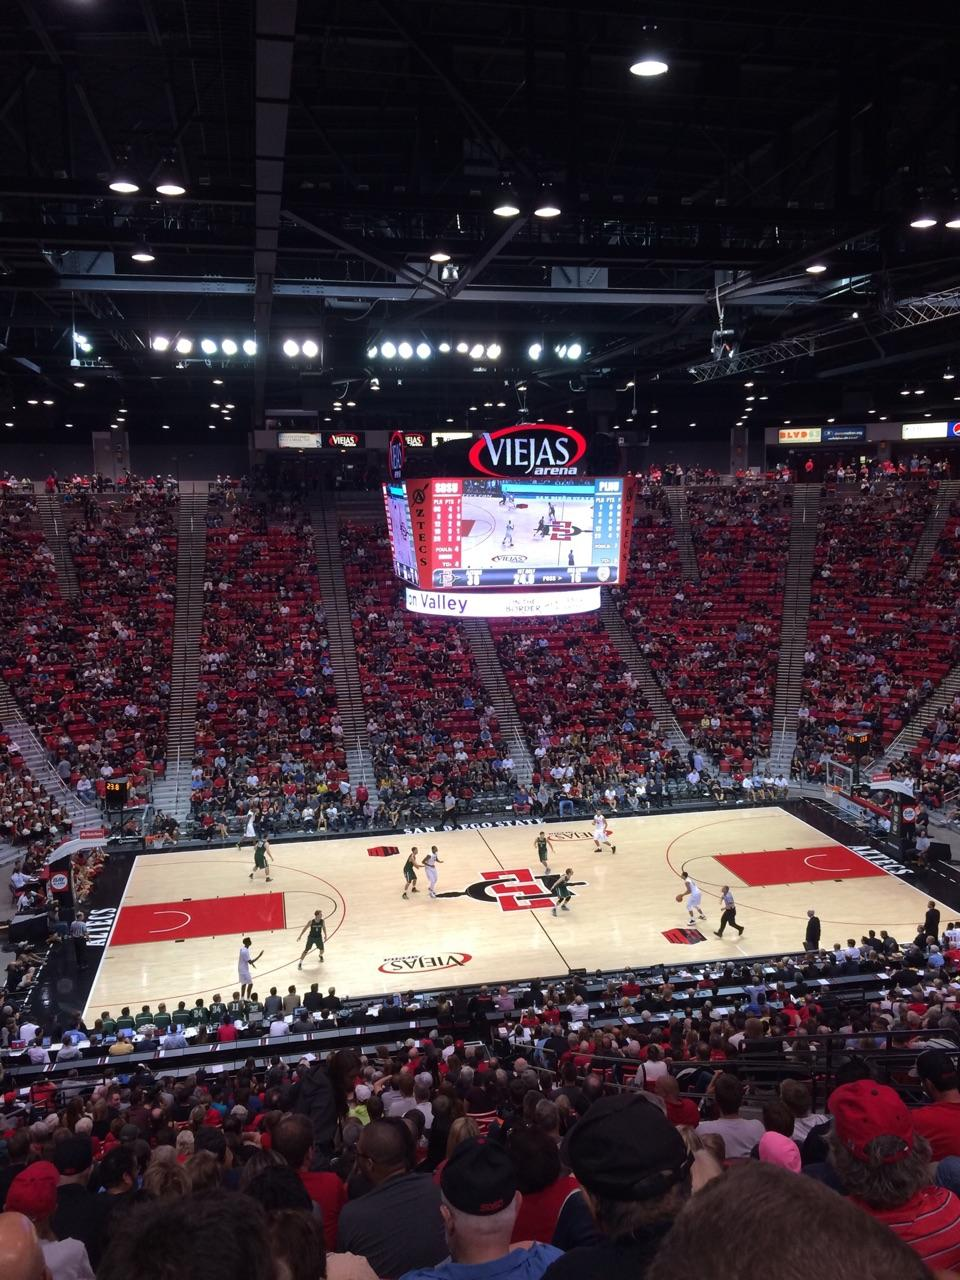 Viejas Arena Section P Row 33 Seat 12